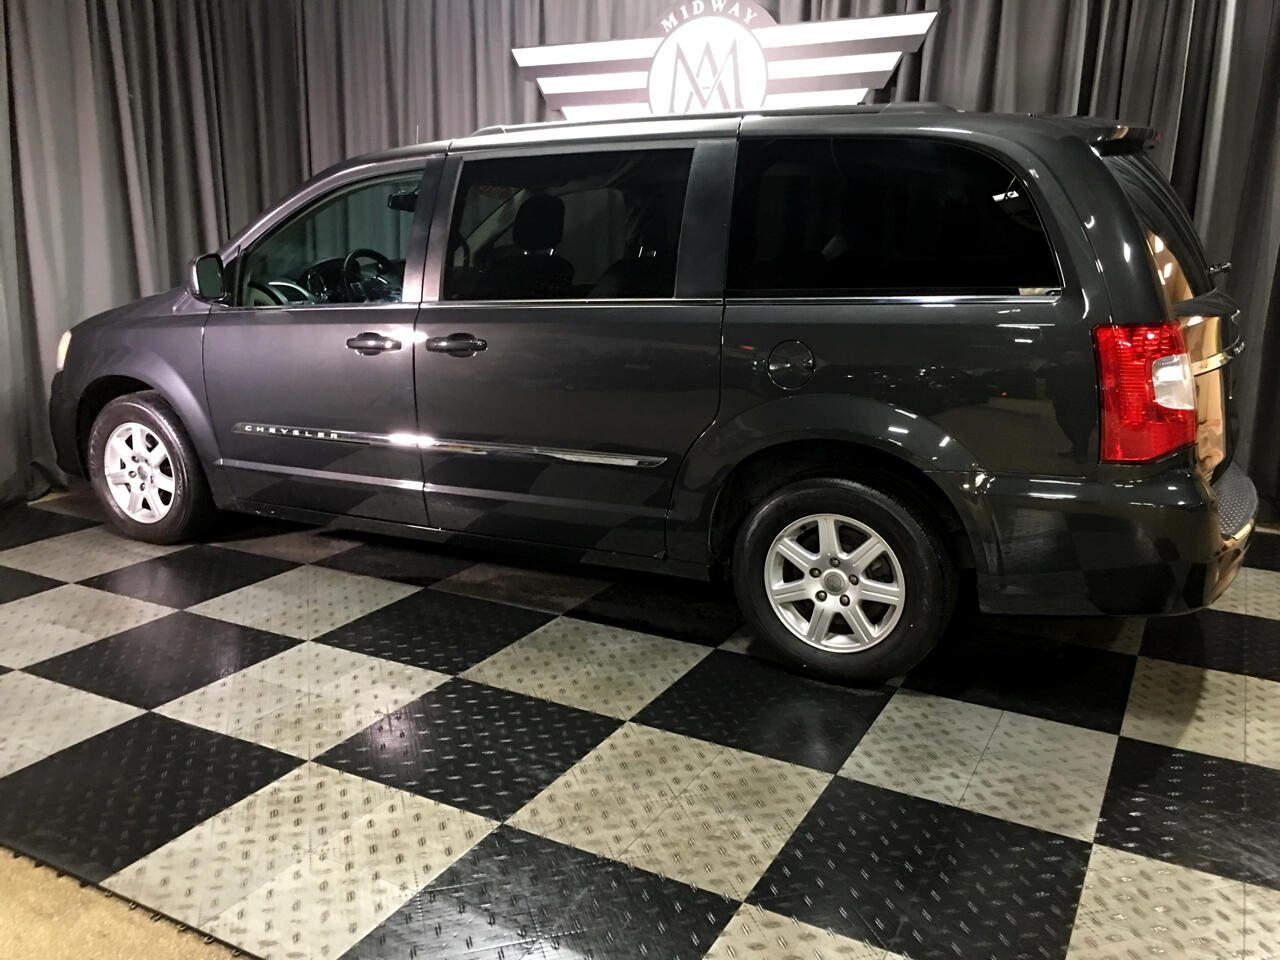 Pre-Owned 2012 Chrysler Town & Country 4dr Wgn Touring